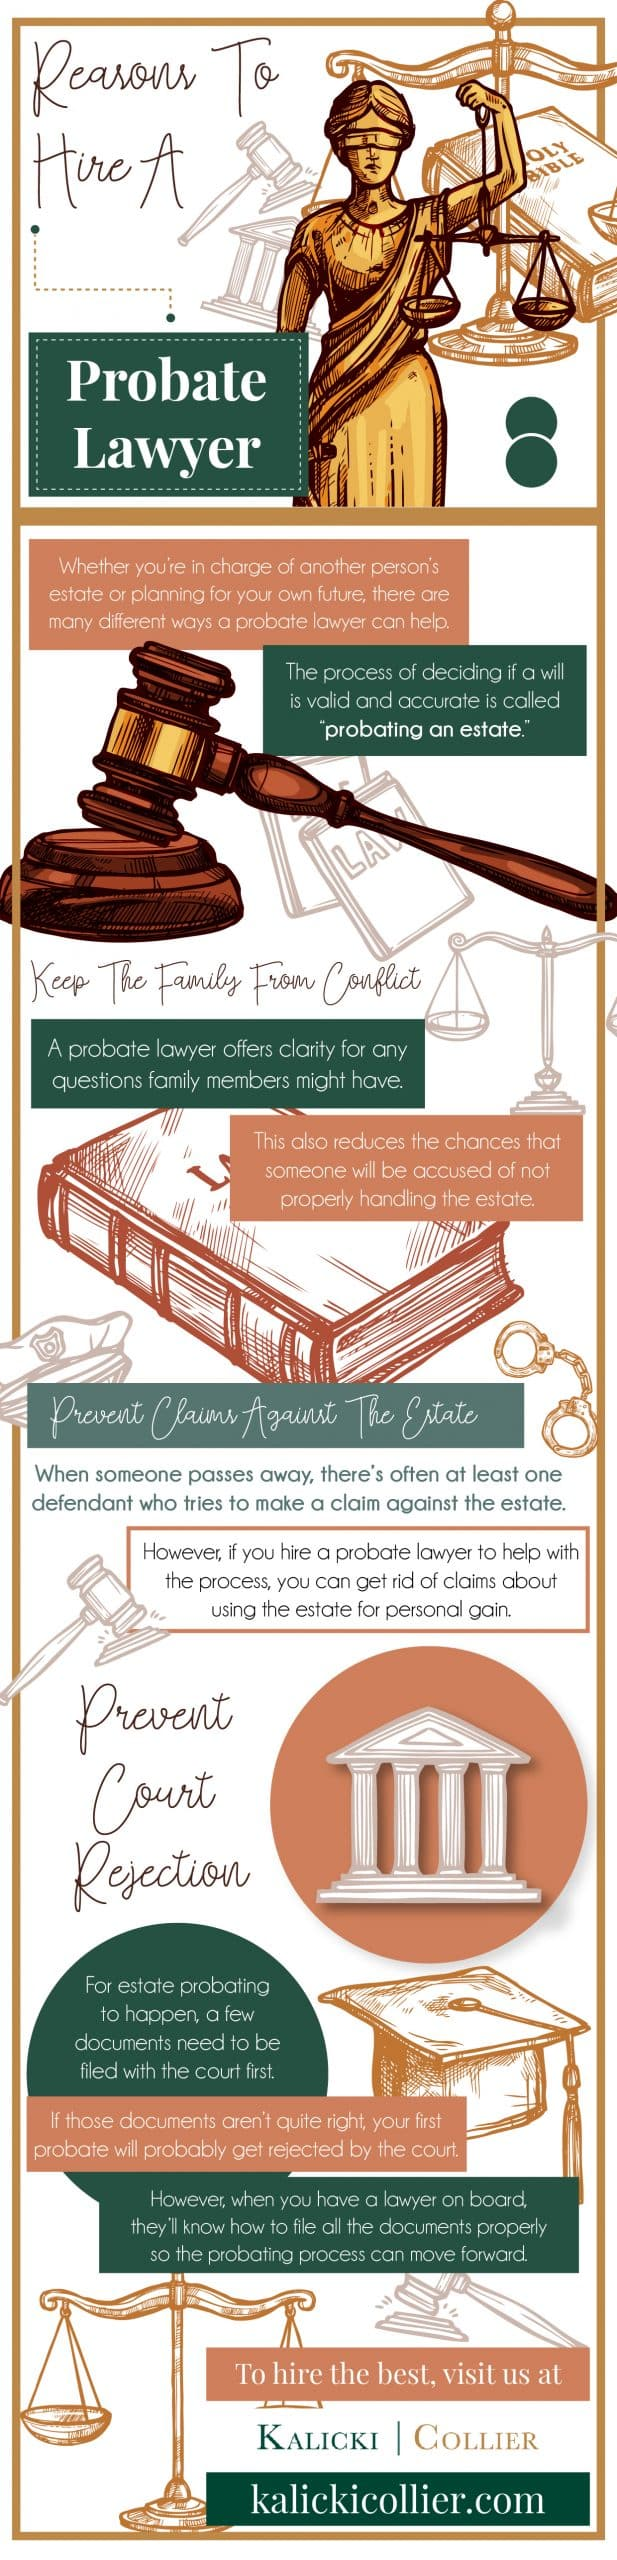 Reason to hire a probate lawyer - Infograph